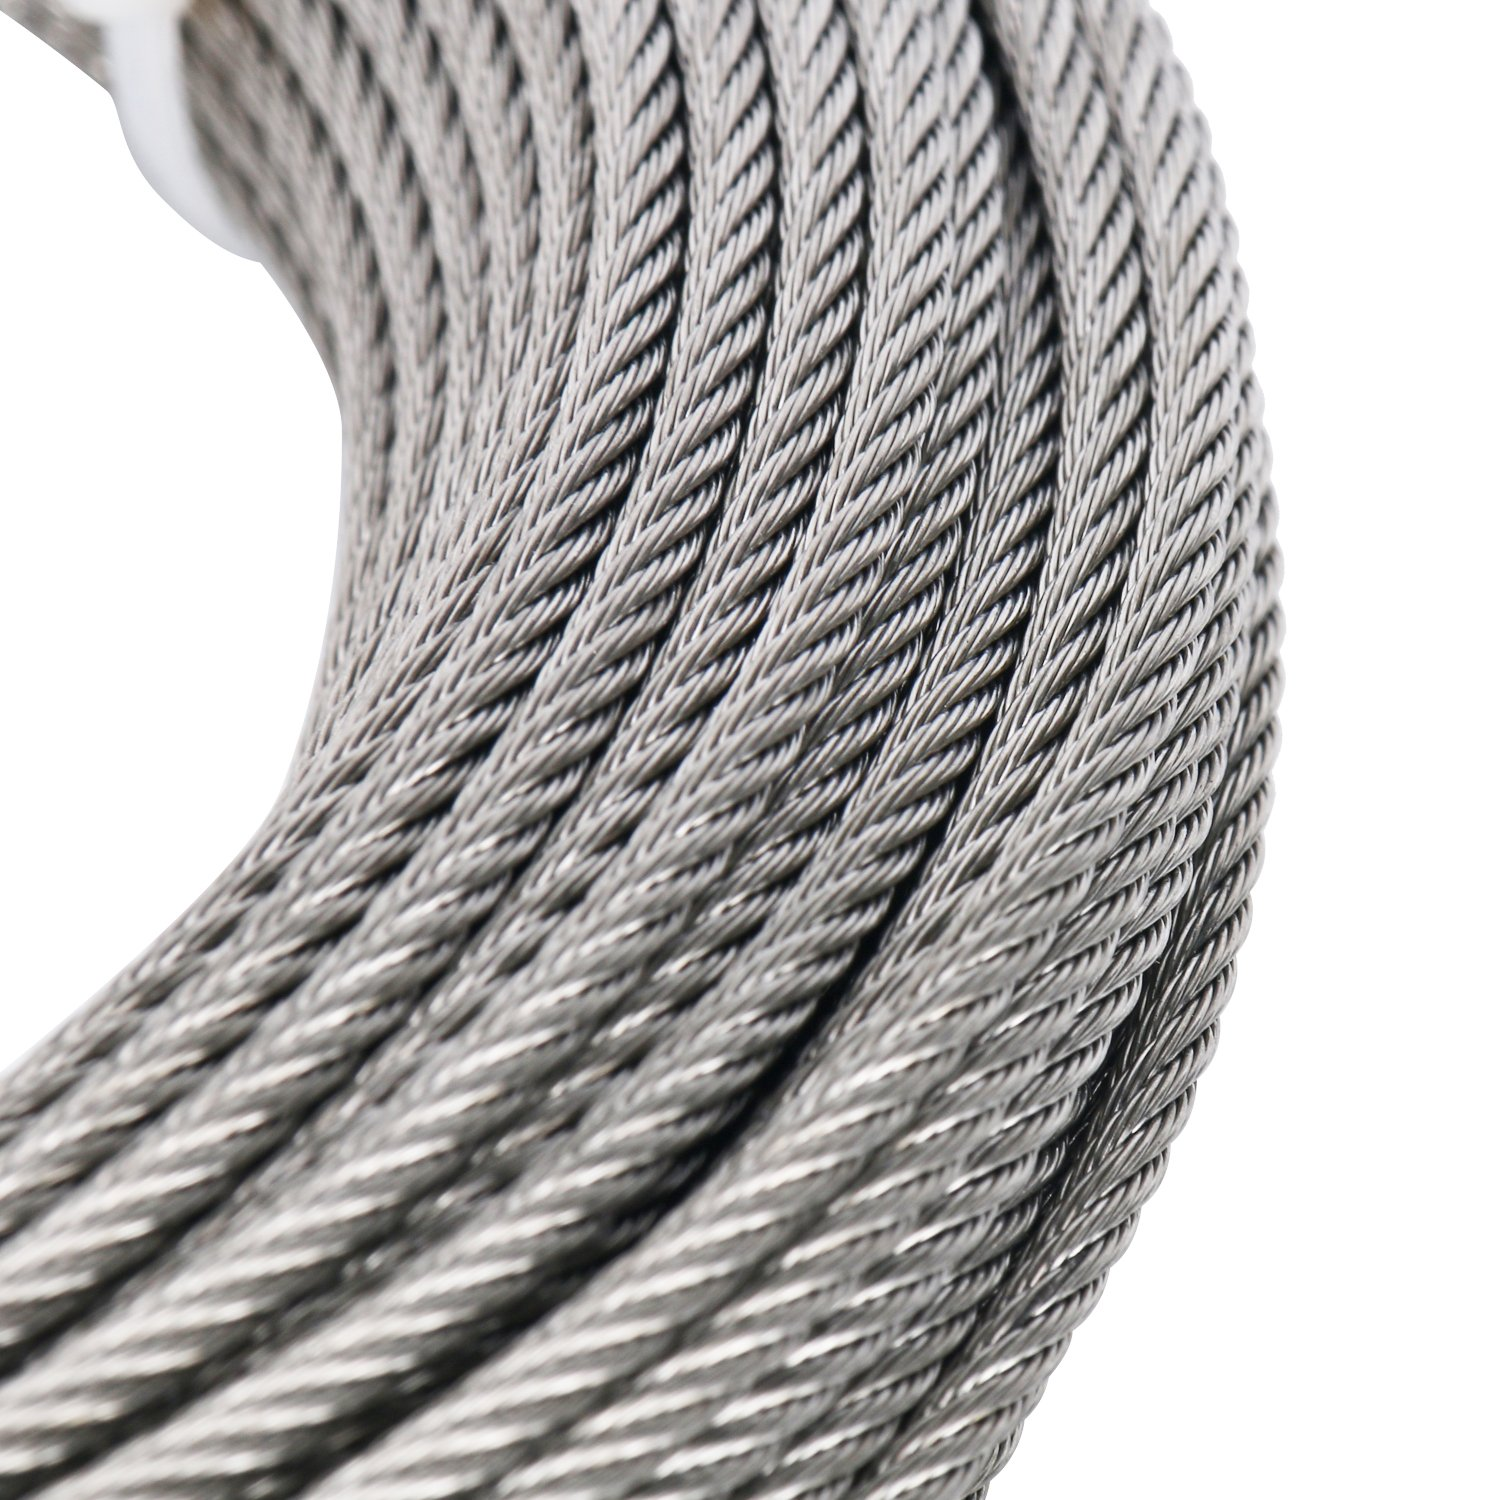 DasMarine Stainless Aircraft Steel Wire Rope Cable for Railing,Decking, DIY Balustrade, 1/8Inch,7x7,164Feet by DasMarine (Image #5)